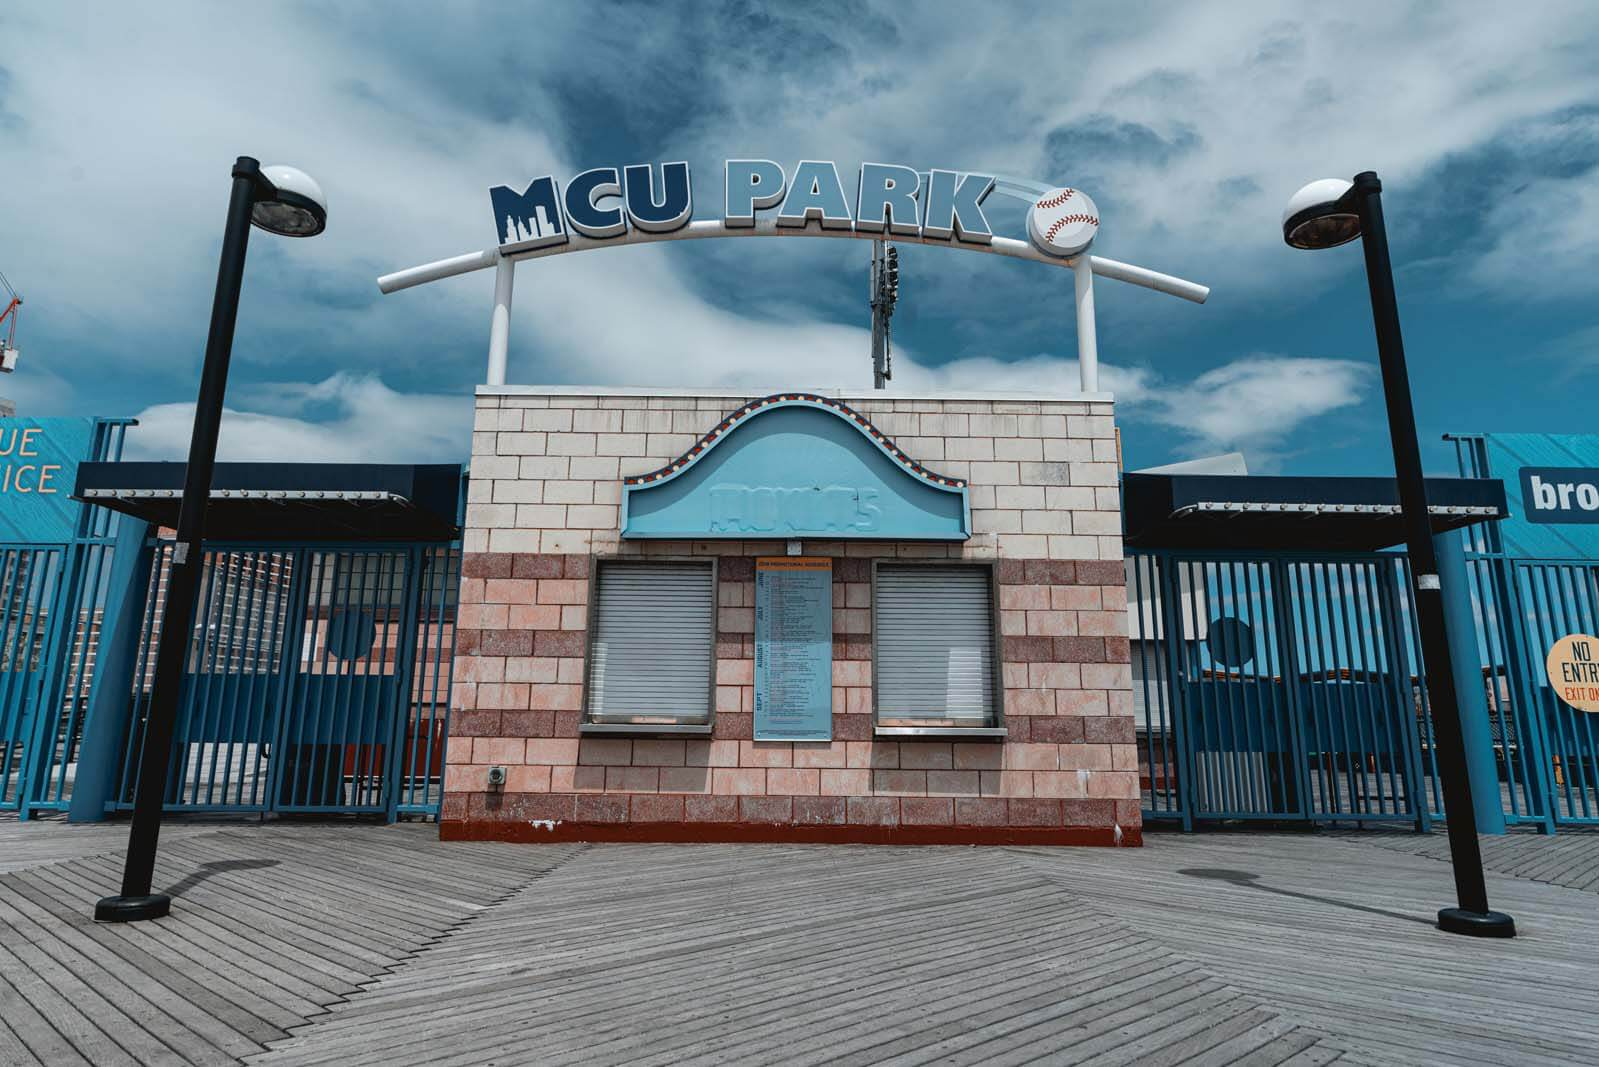 MCU Park at Coney Island where the Cyclones play baseball